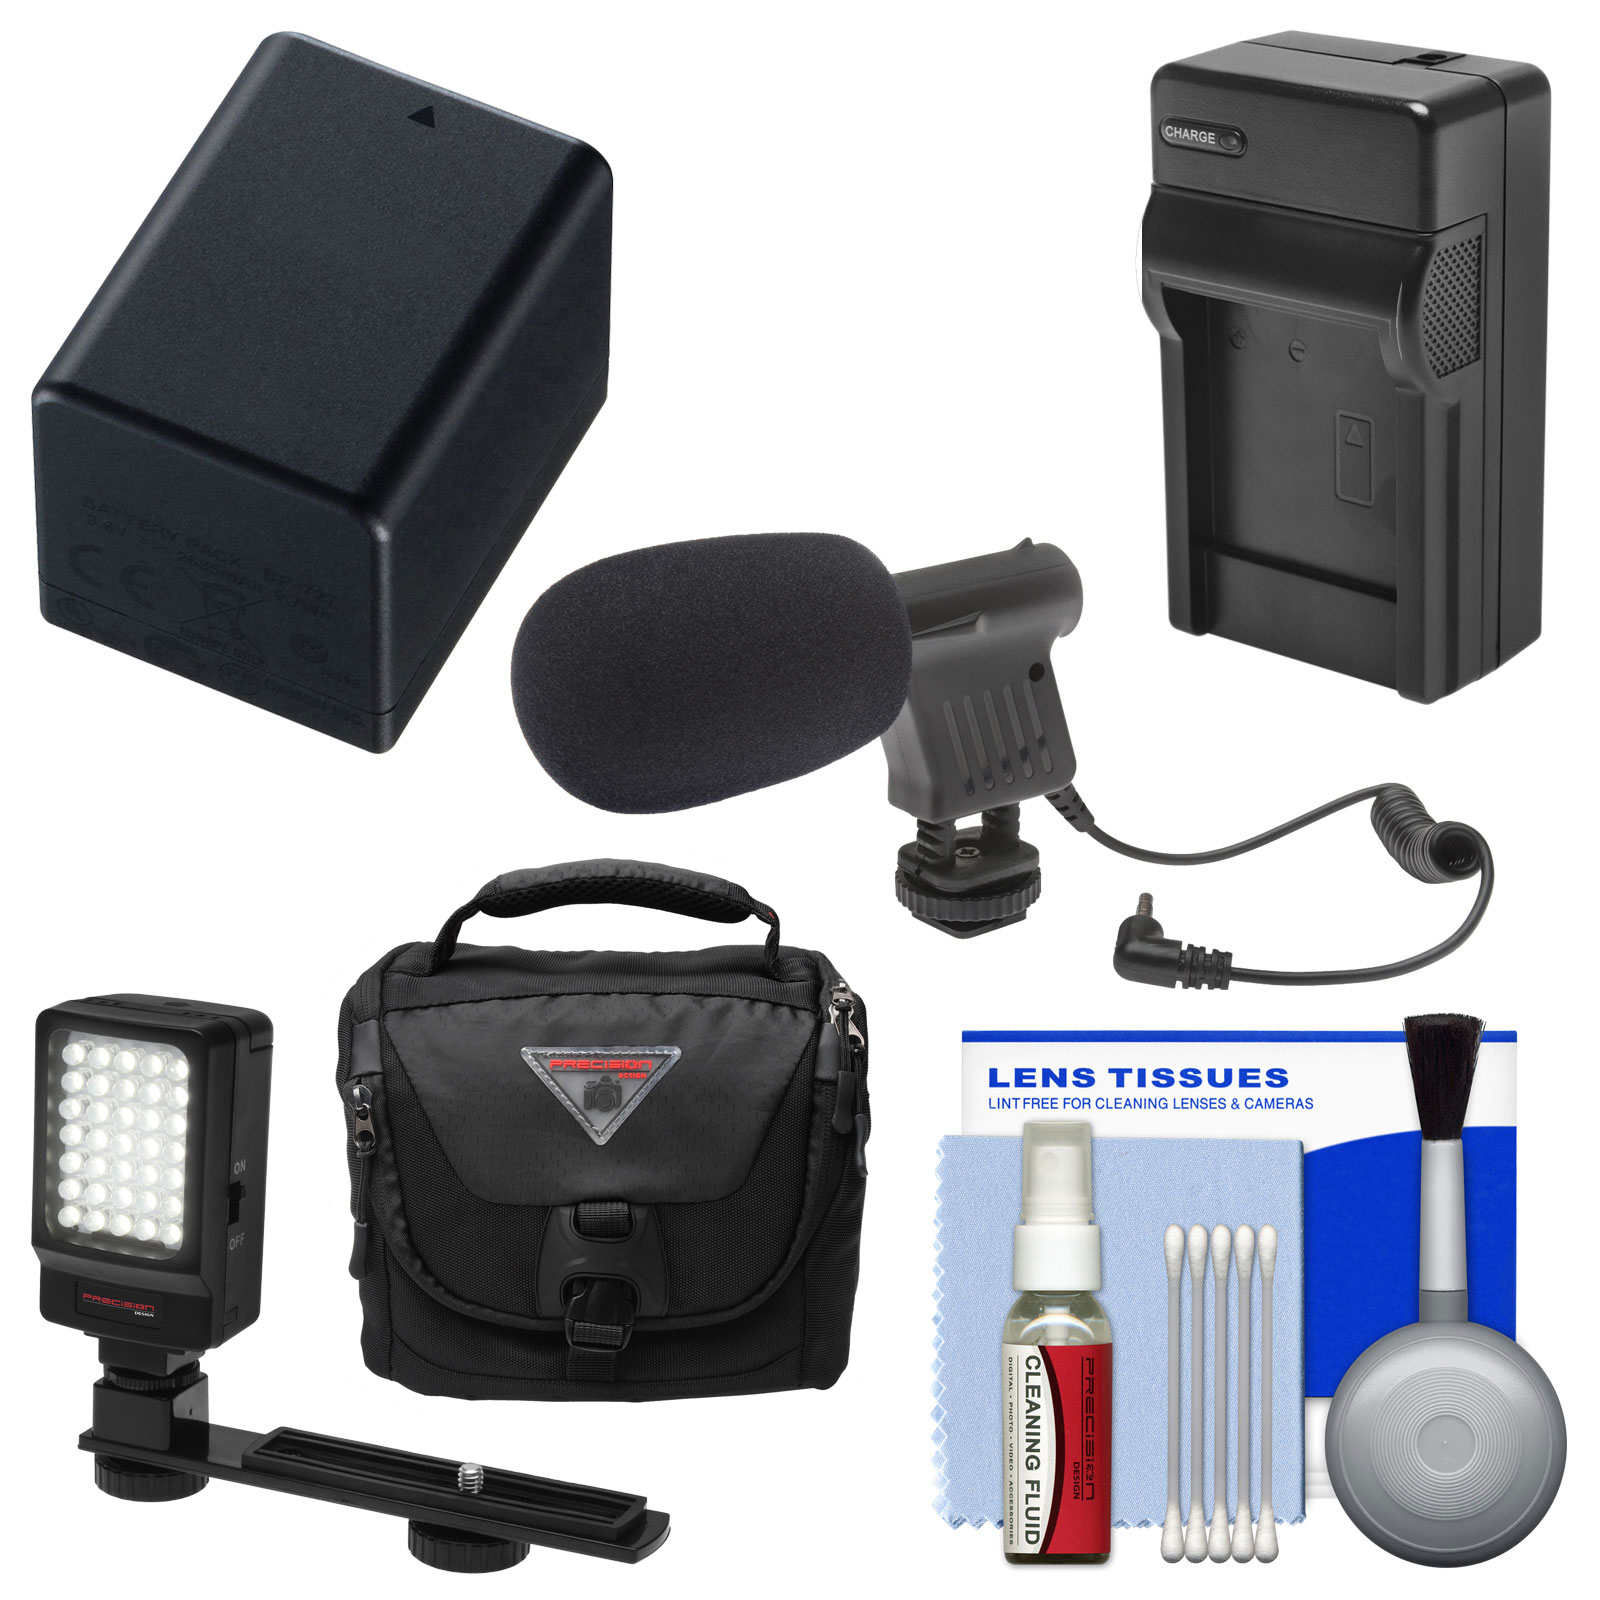 Essentials Bundle for Canon Vixia HF R60, R600, R62, R70, R700, R72 Camcorder with Case + LED Light + Microphone + BP-727 Battery & Charger + Cleaning Kit